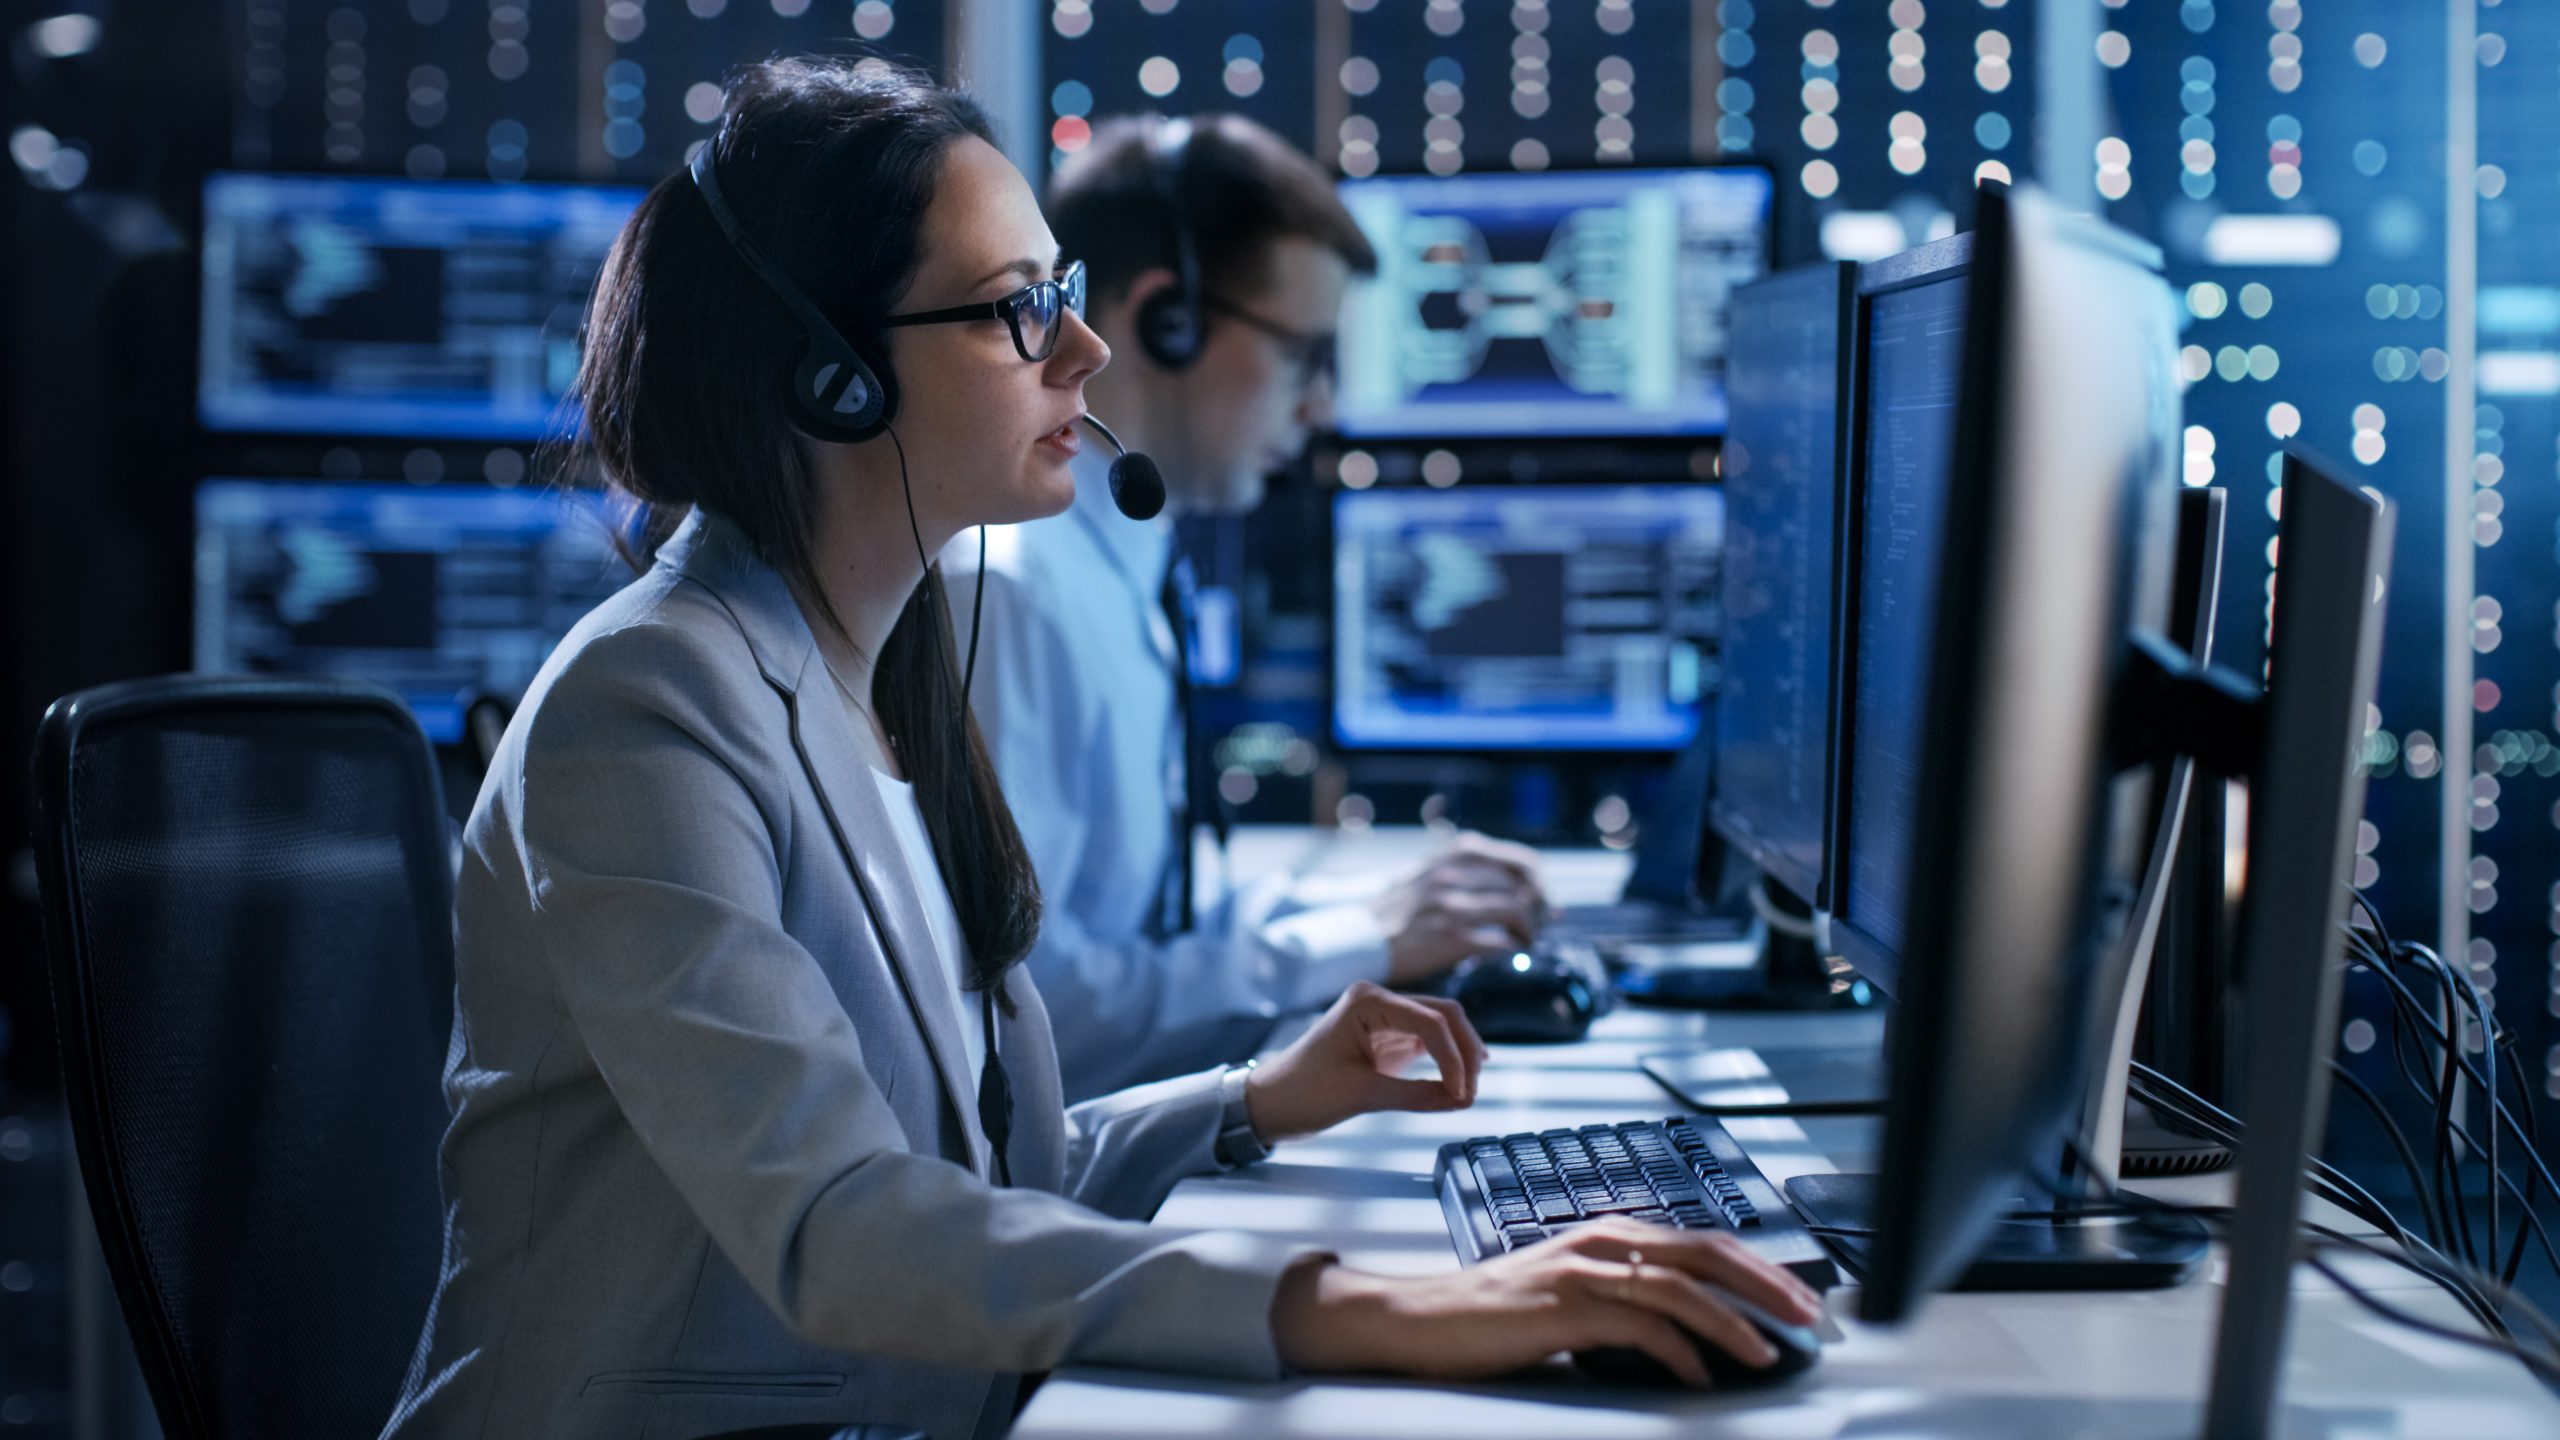 cybersecurity investigator at a workstation